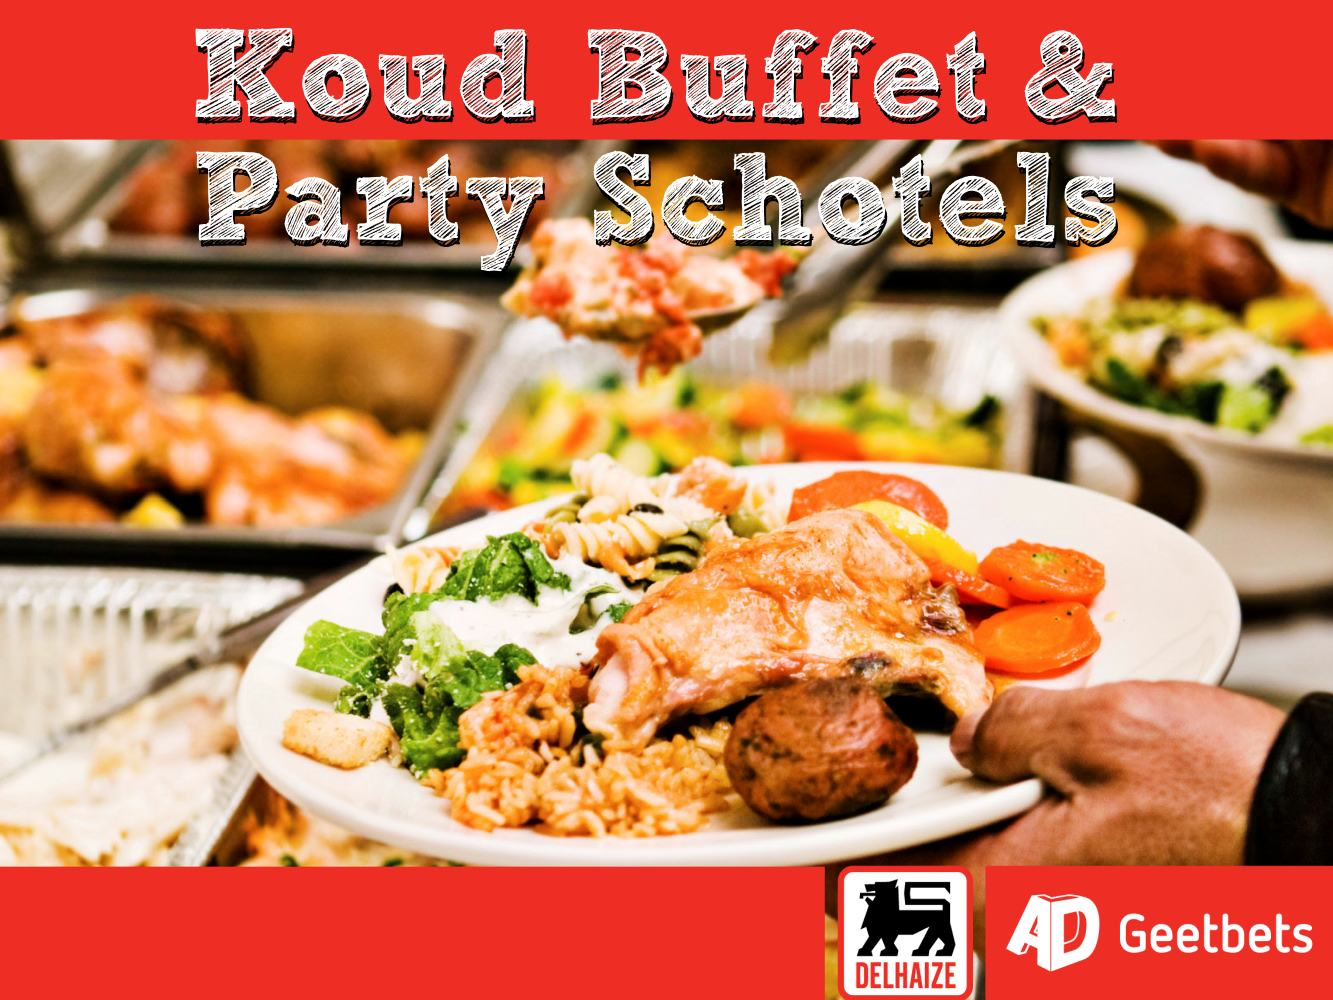 Koud buffet & Party Schotels 2016